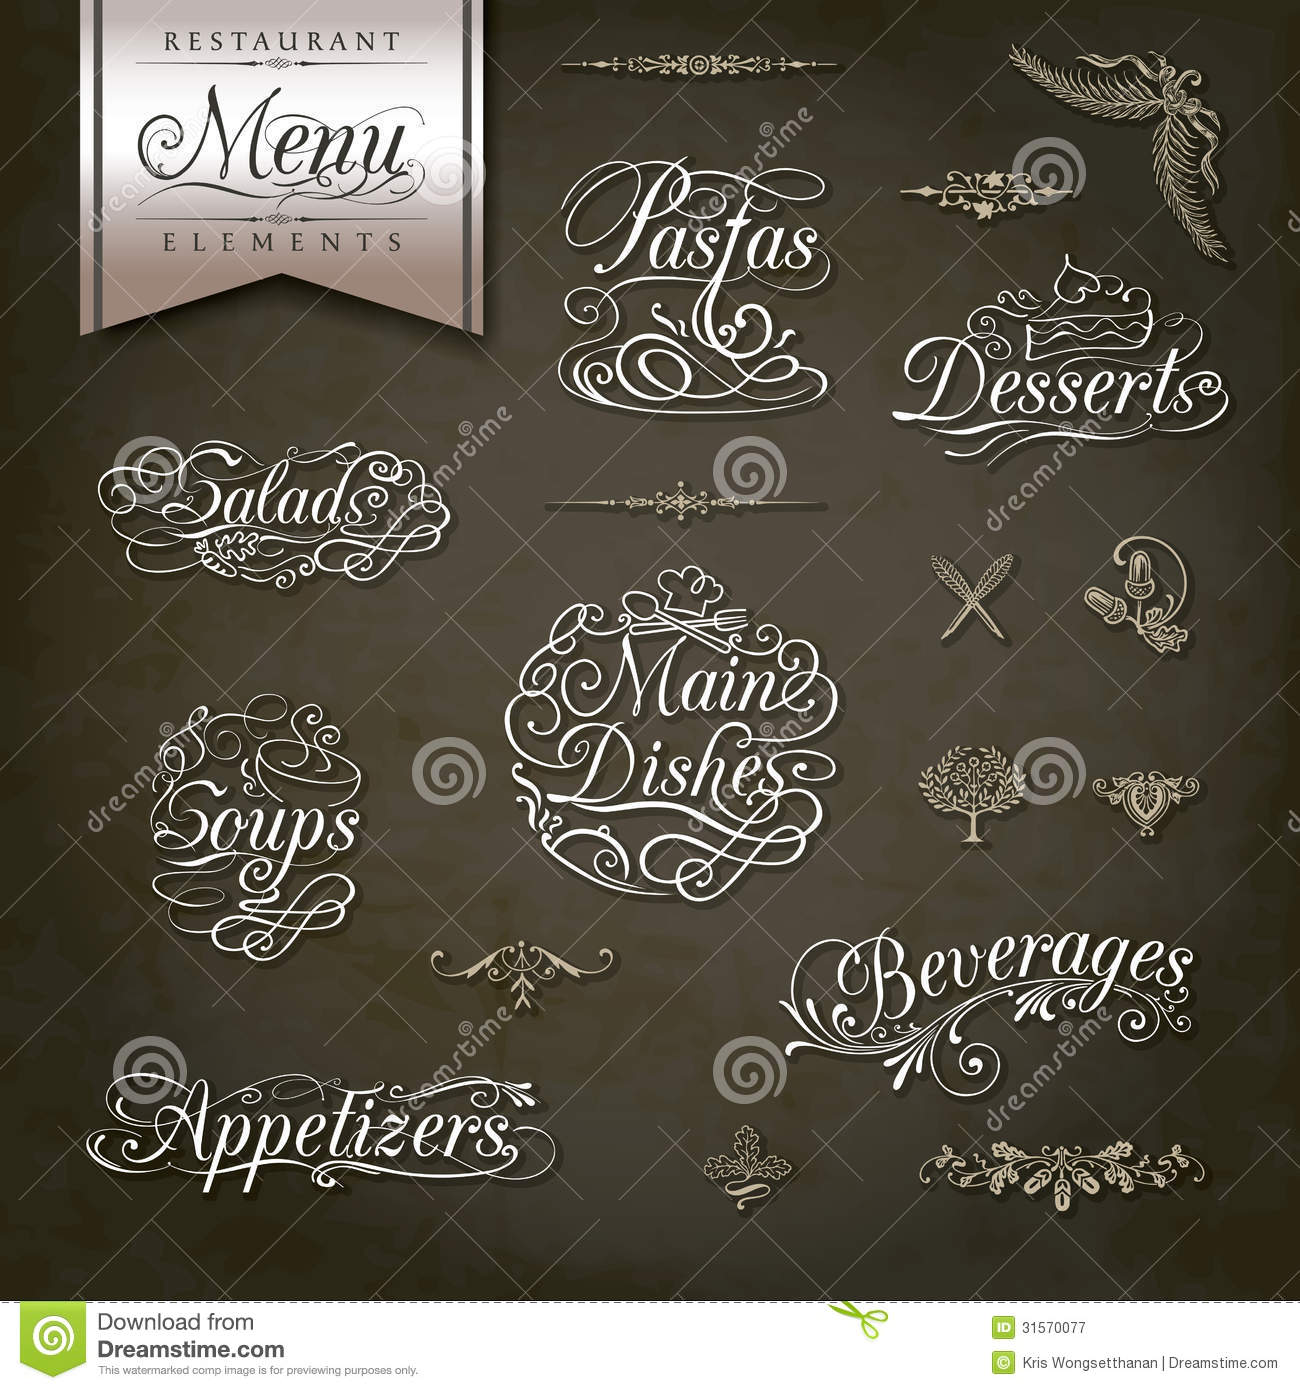 Vintage Style Restaurant Menu Designs Stock Vector - Image: 31570077